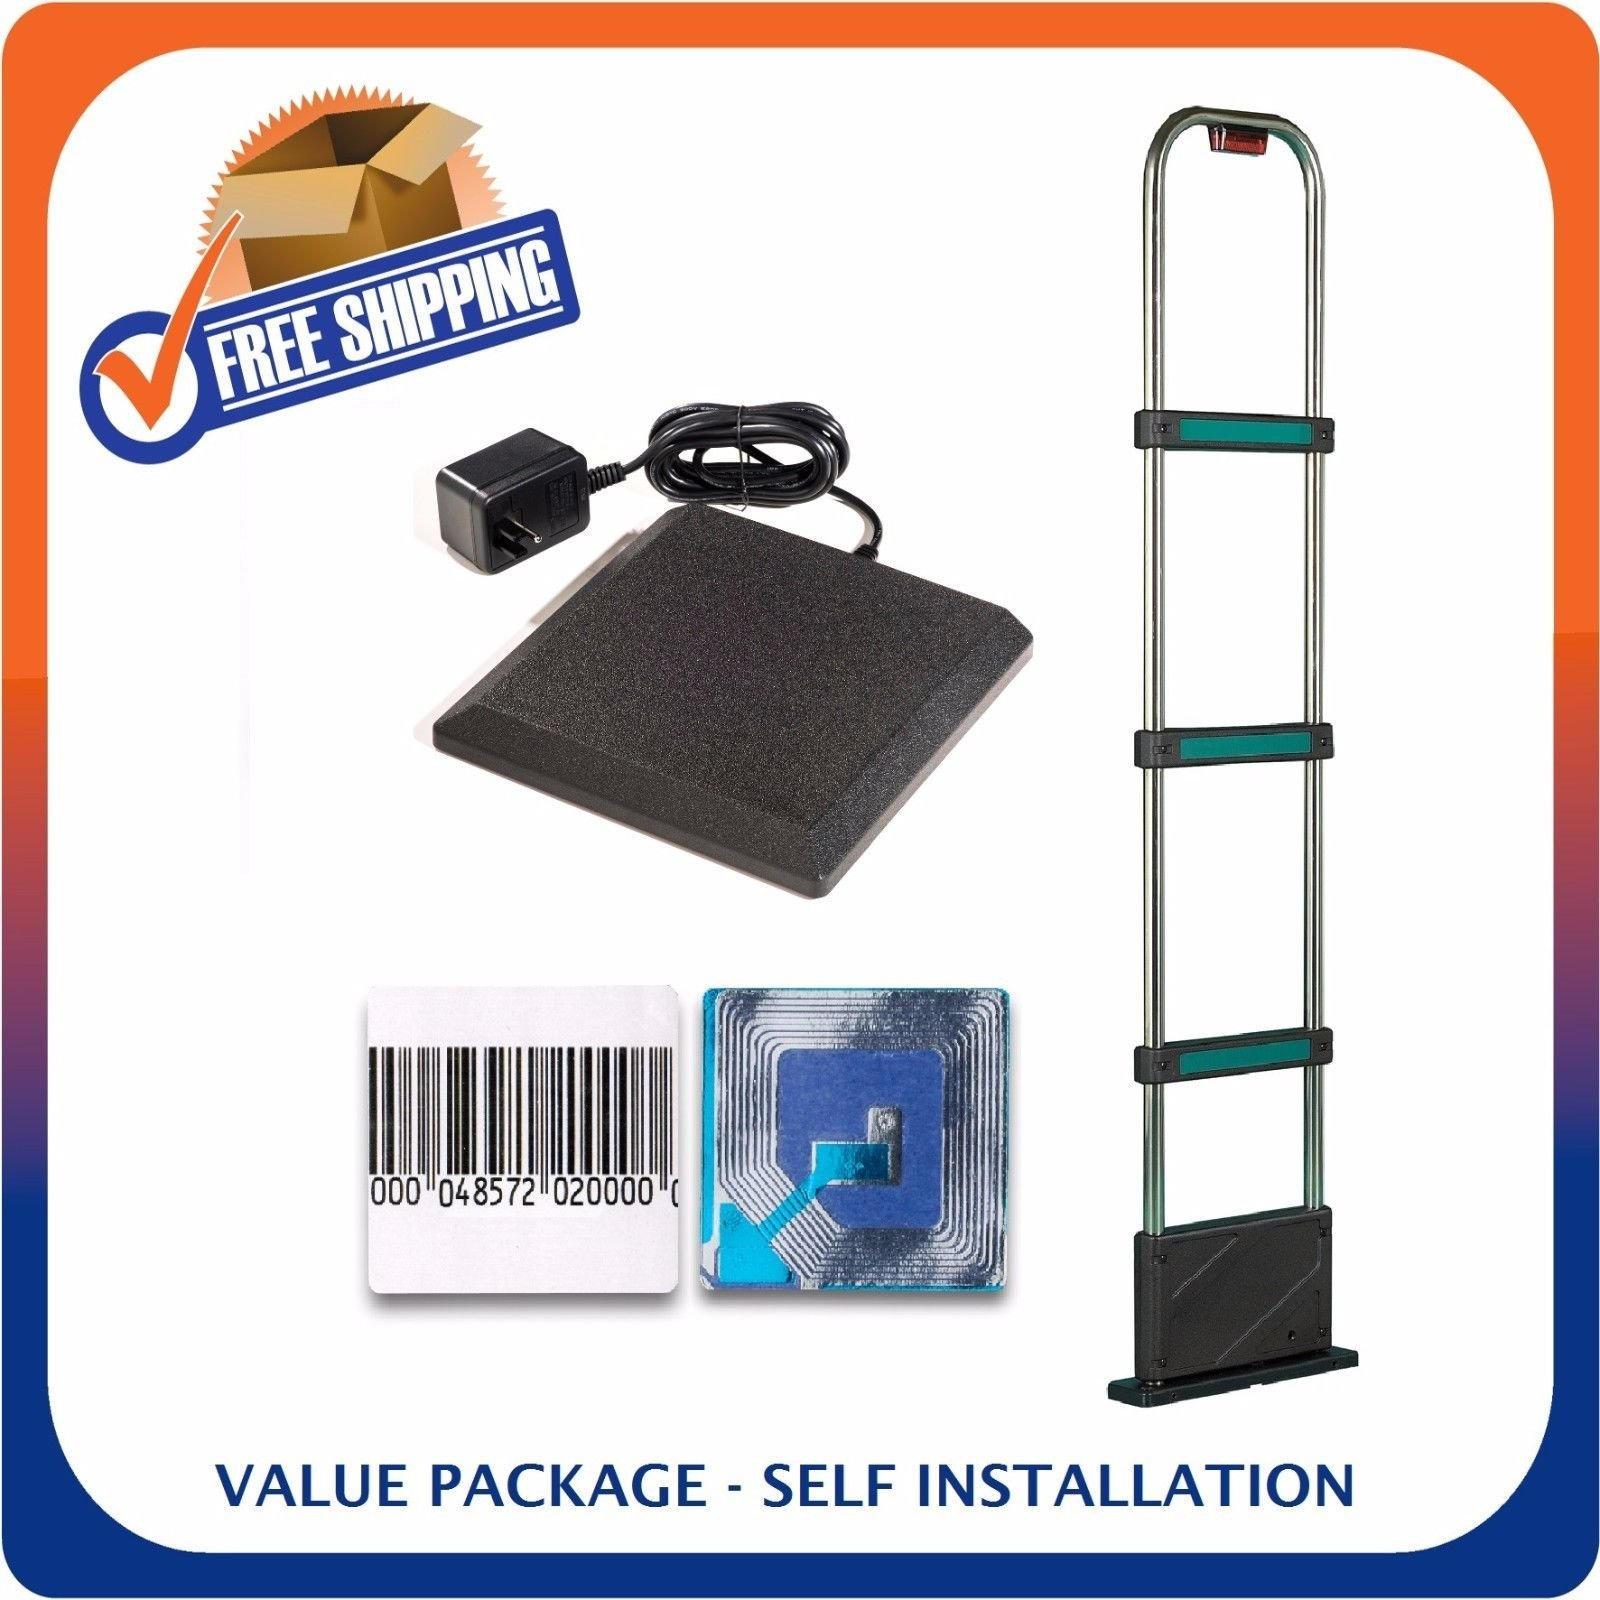 Retail Security Value Pack Including Tower + Deactivator + Soft Labels - EAS Loss Prevention - MADE IN USA by Sensornation (Image #1)